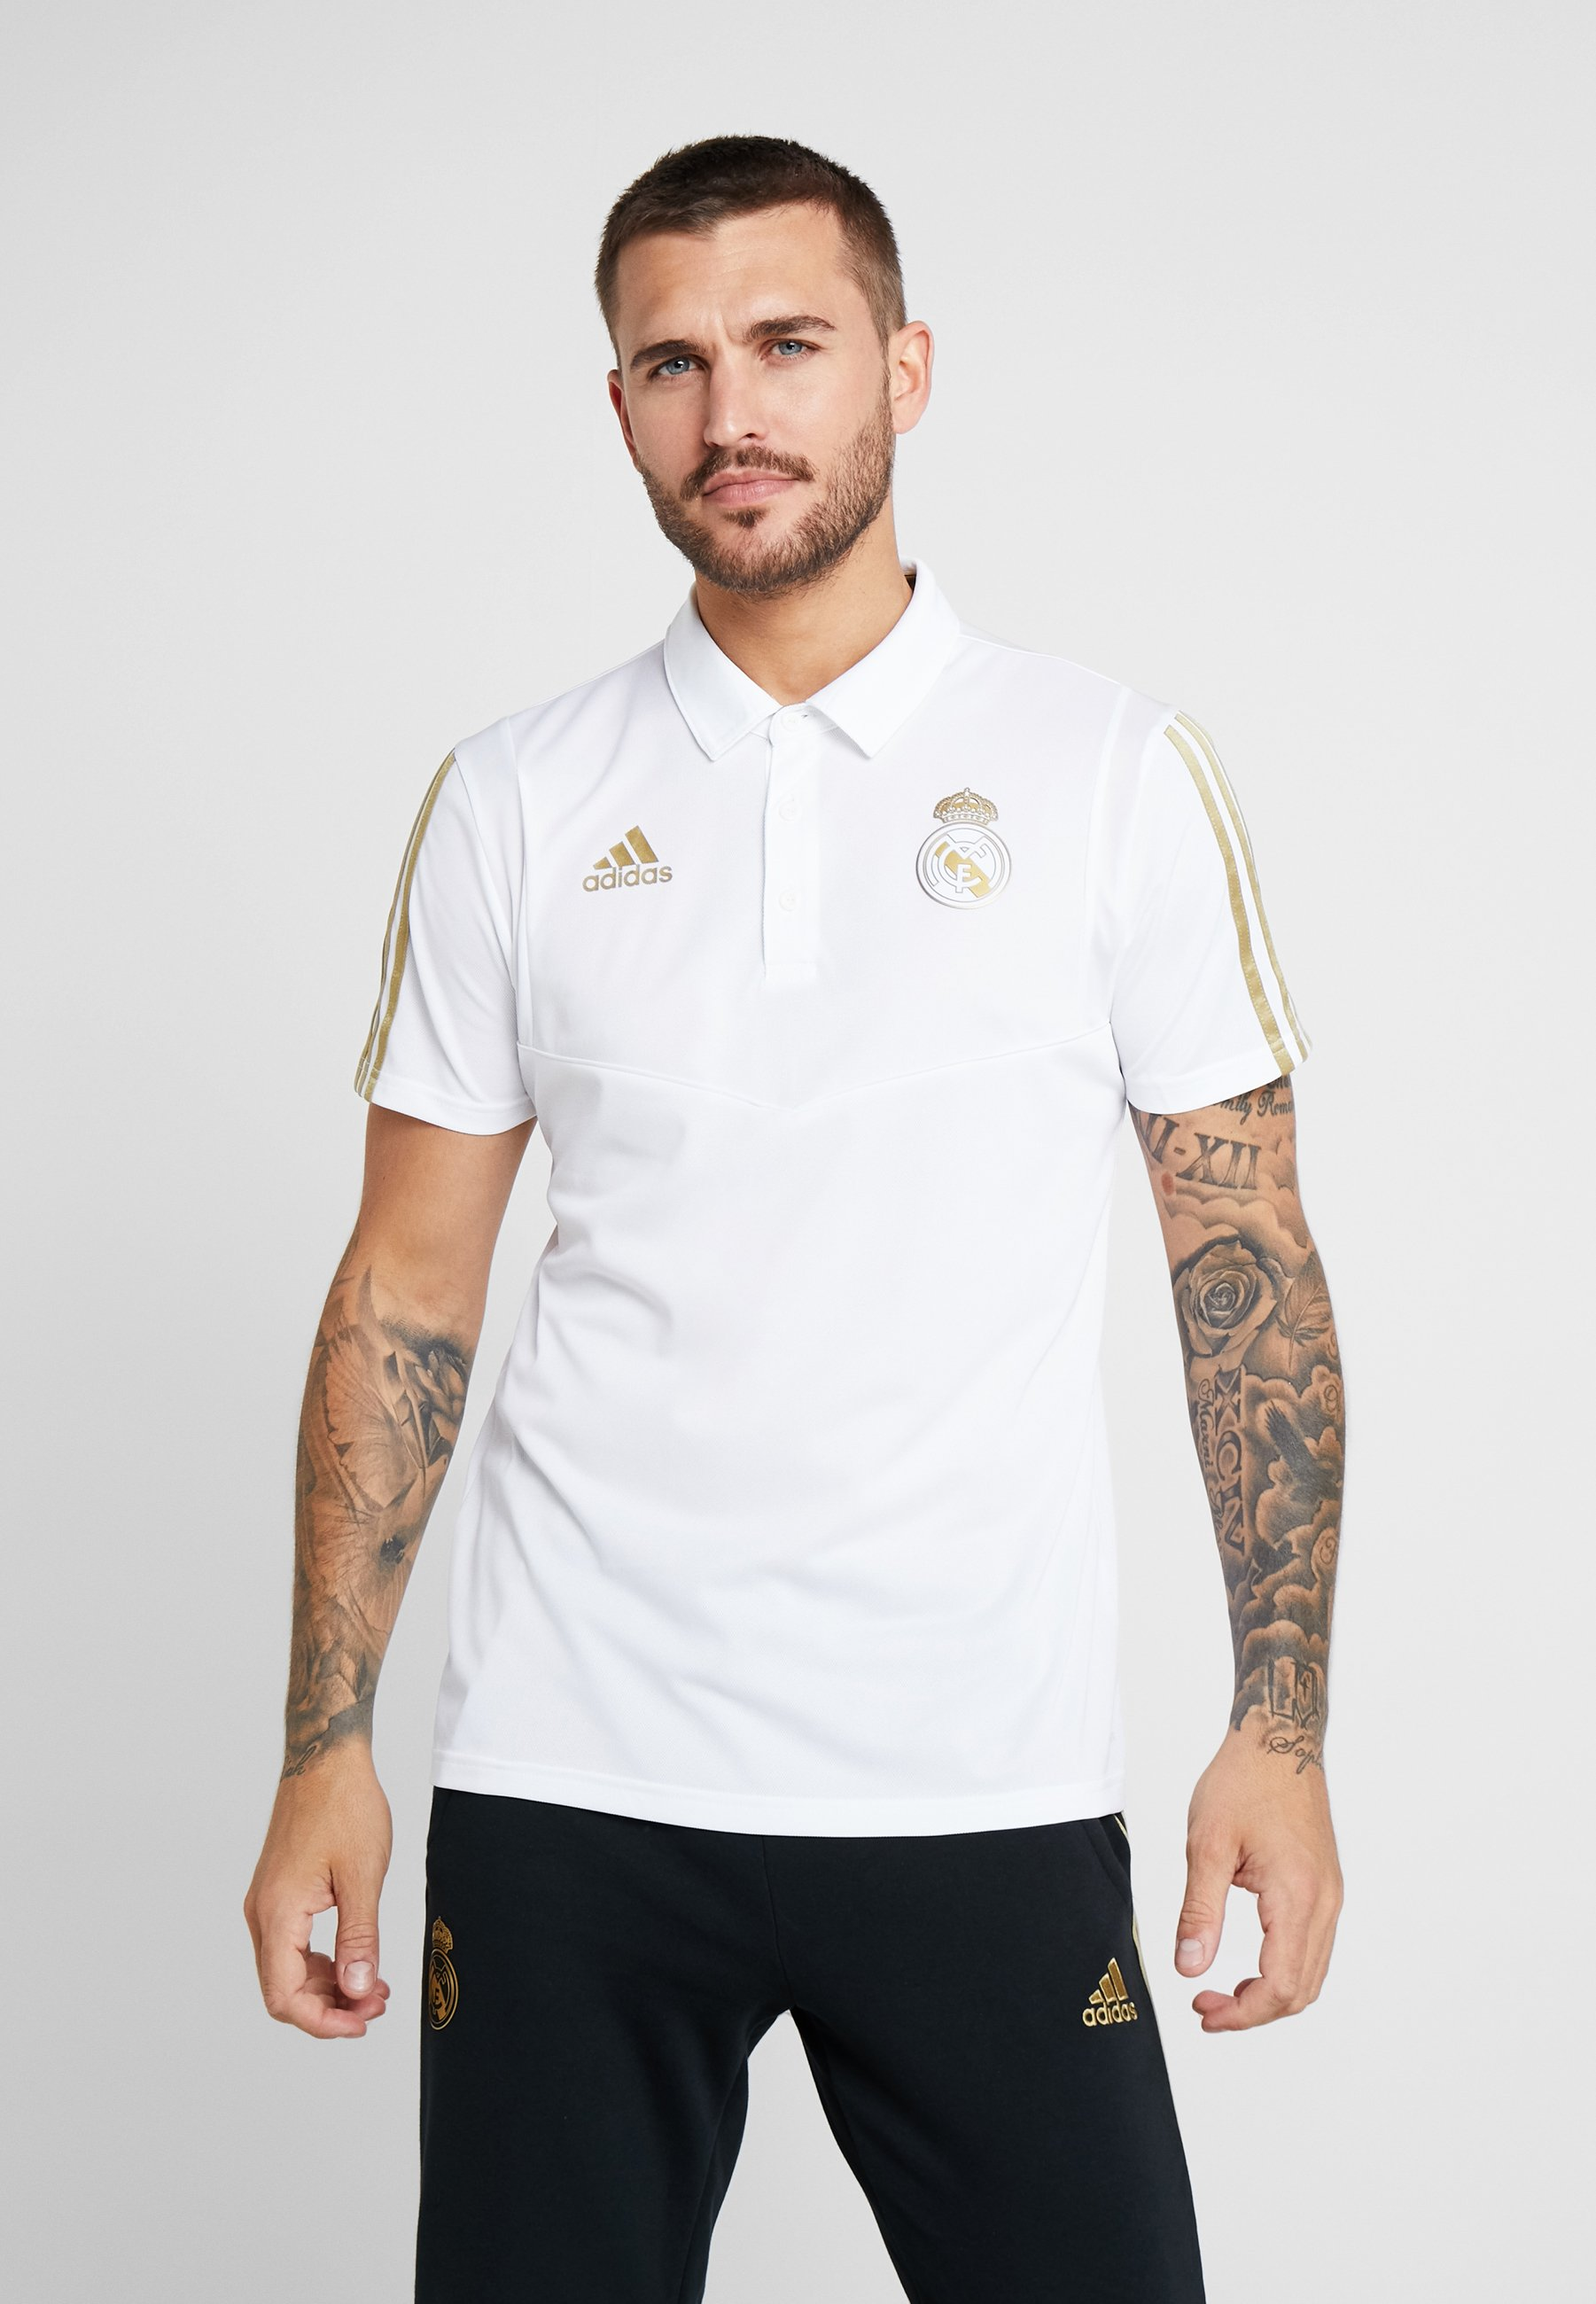 Supporter De Madrid Performance Adidas PoloArticle Real White IgY6vbyf7m